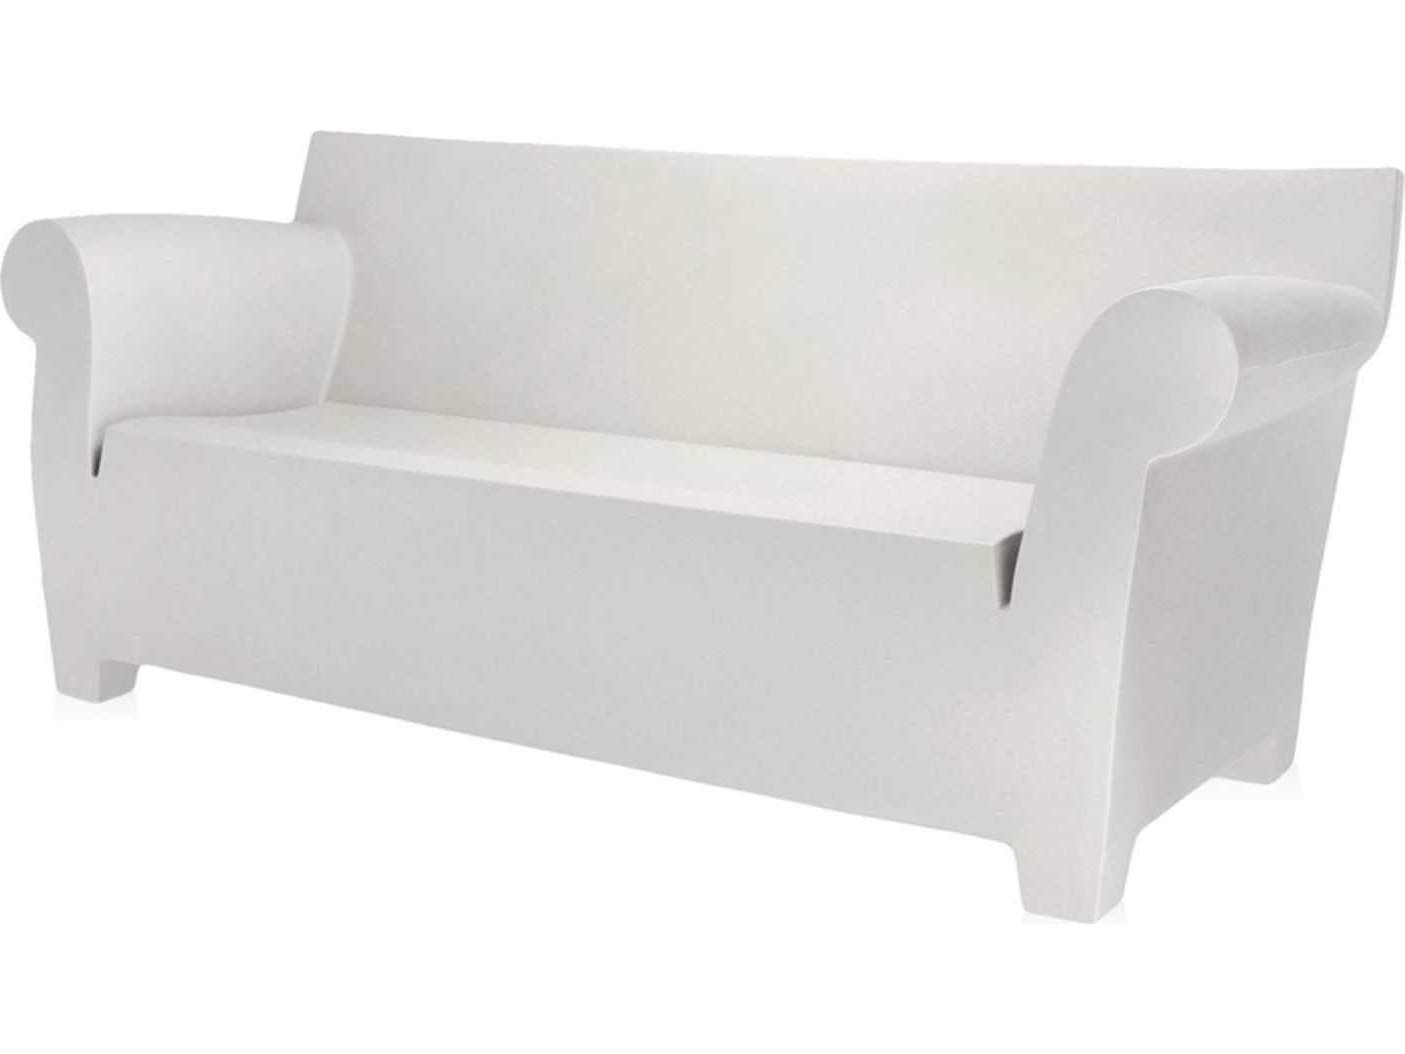 Bubble Club Sofas Intended For Well Known Kartell Bubble Club Zinc White Sofa (Gallery 15 of 20)